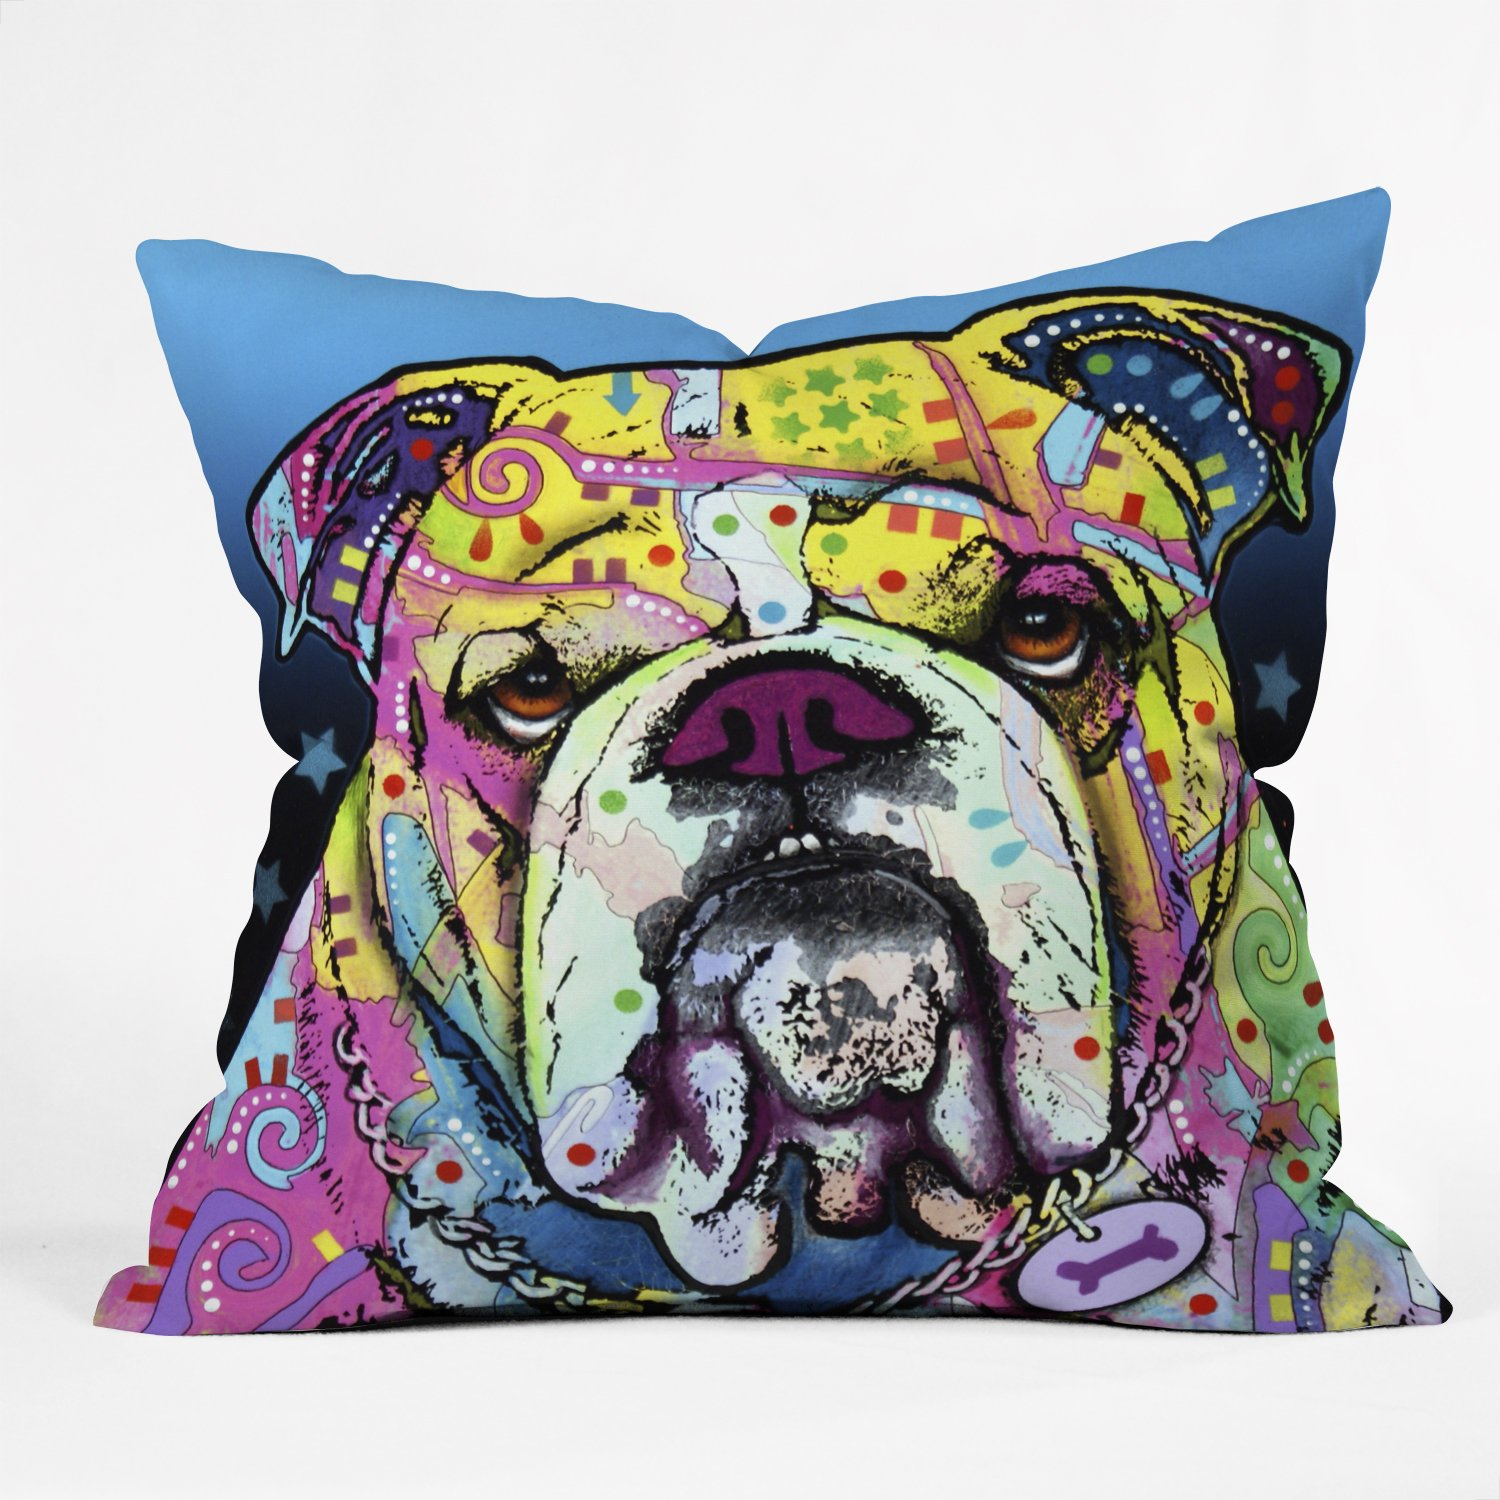 DENY Designs Dean Russo The Bulldog Throw Pillow, 18 by 18-Inch